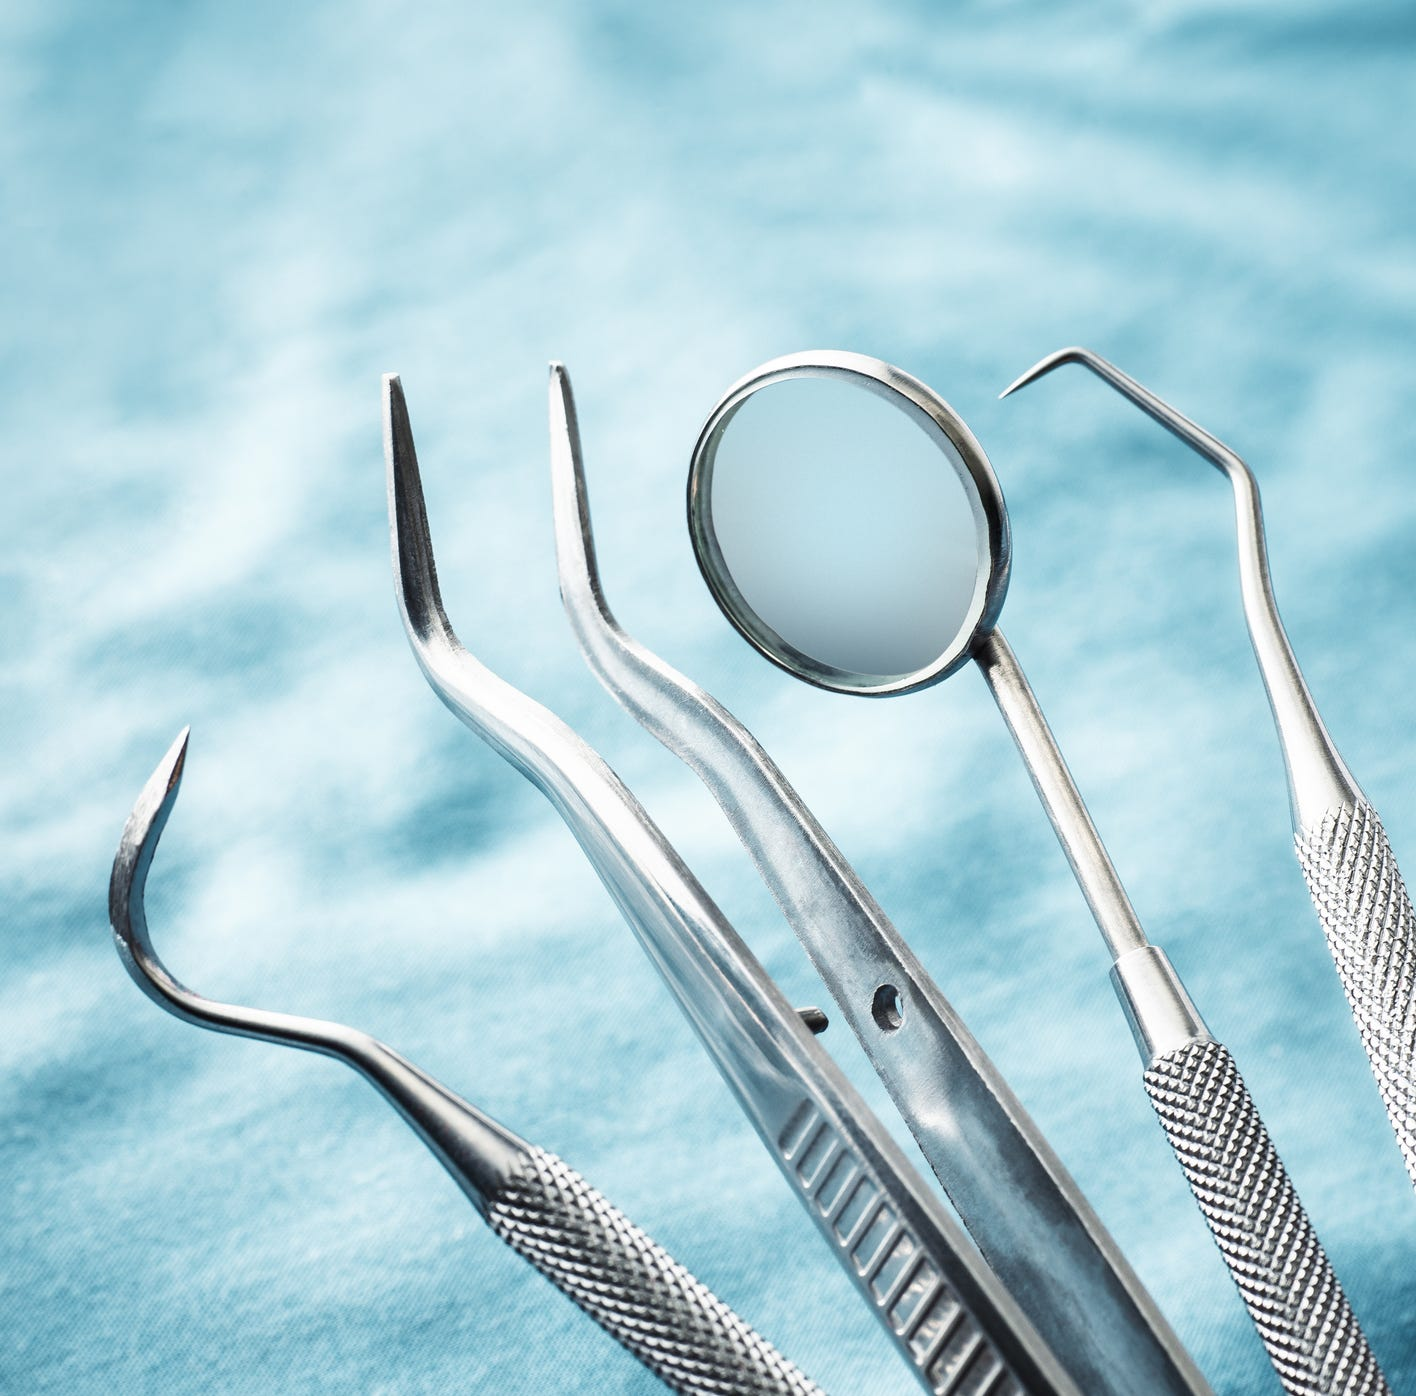 Arizona AG sues dental supply company over antitrust, consumer fraud claims